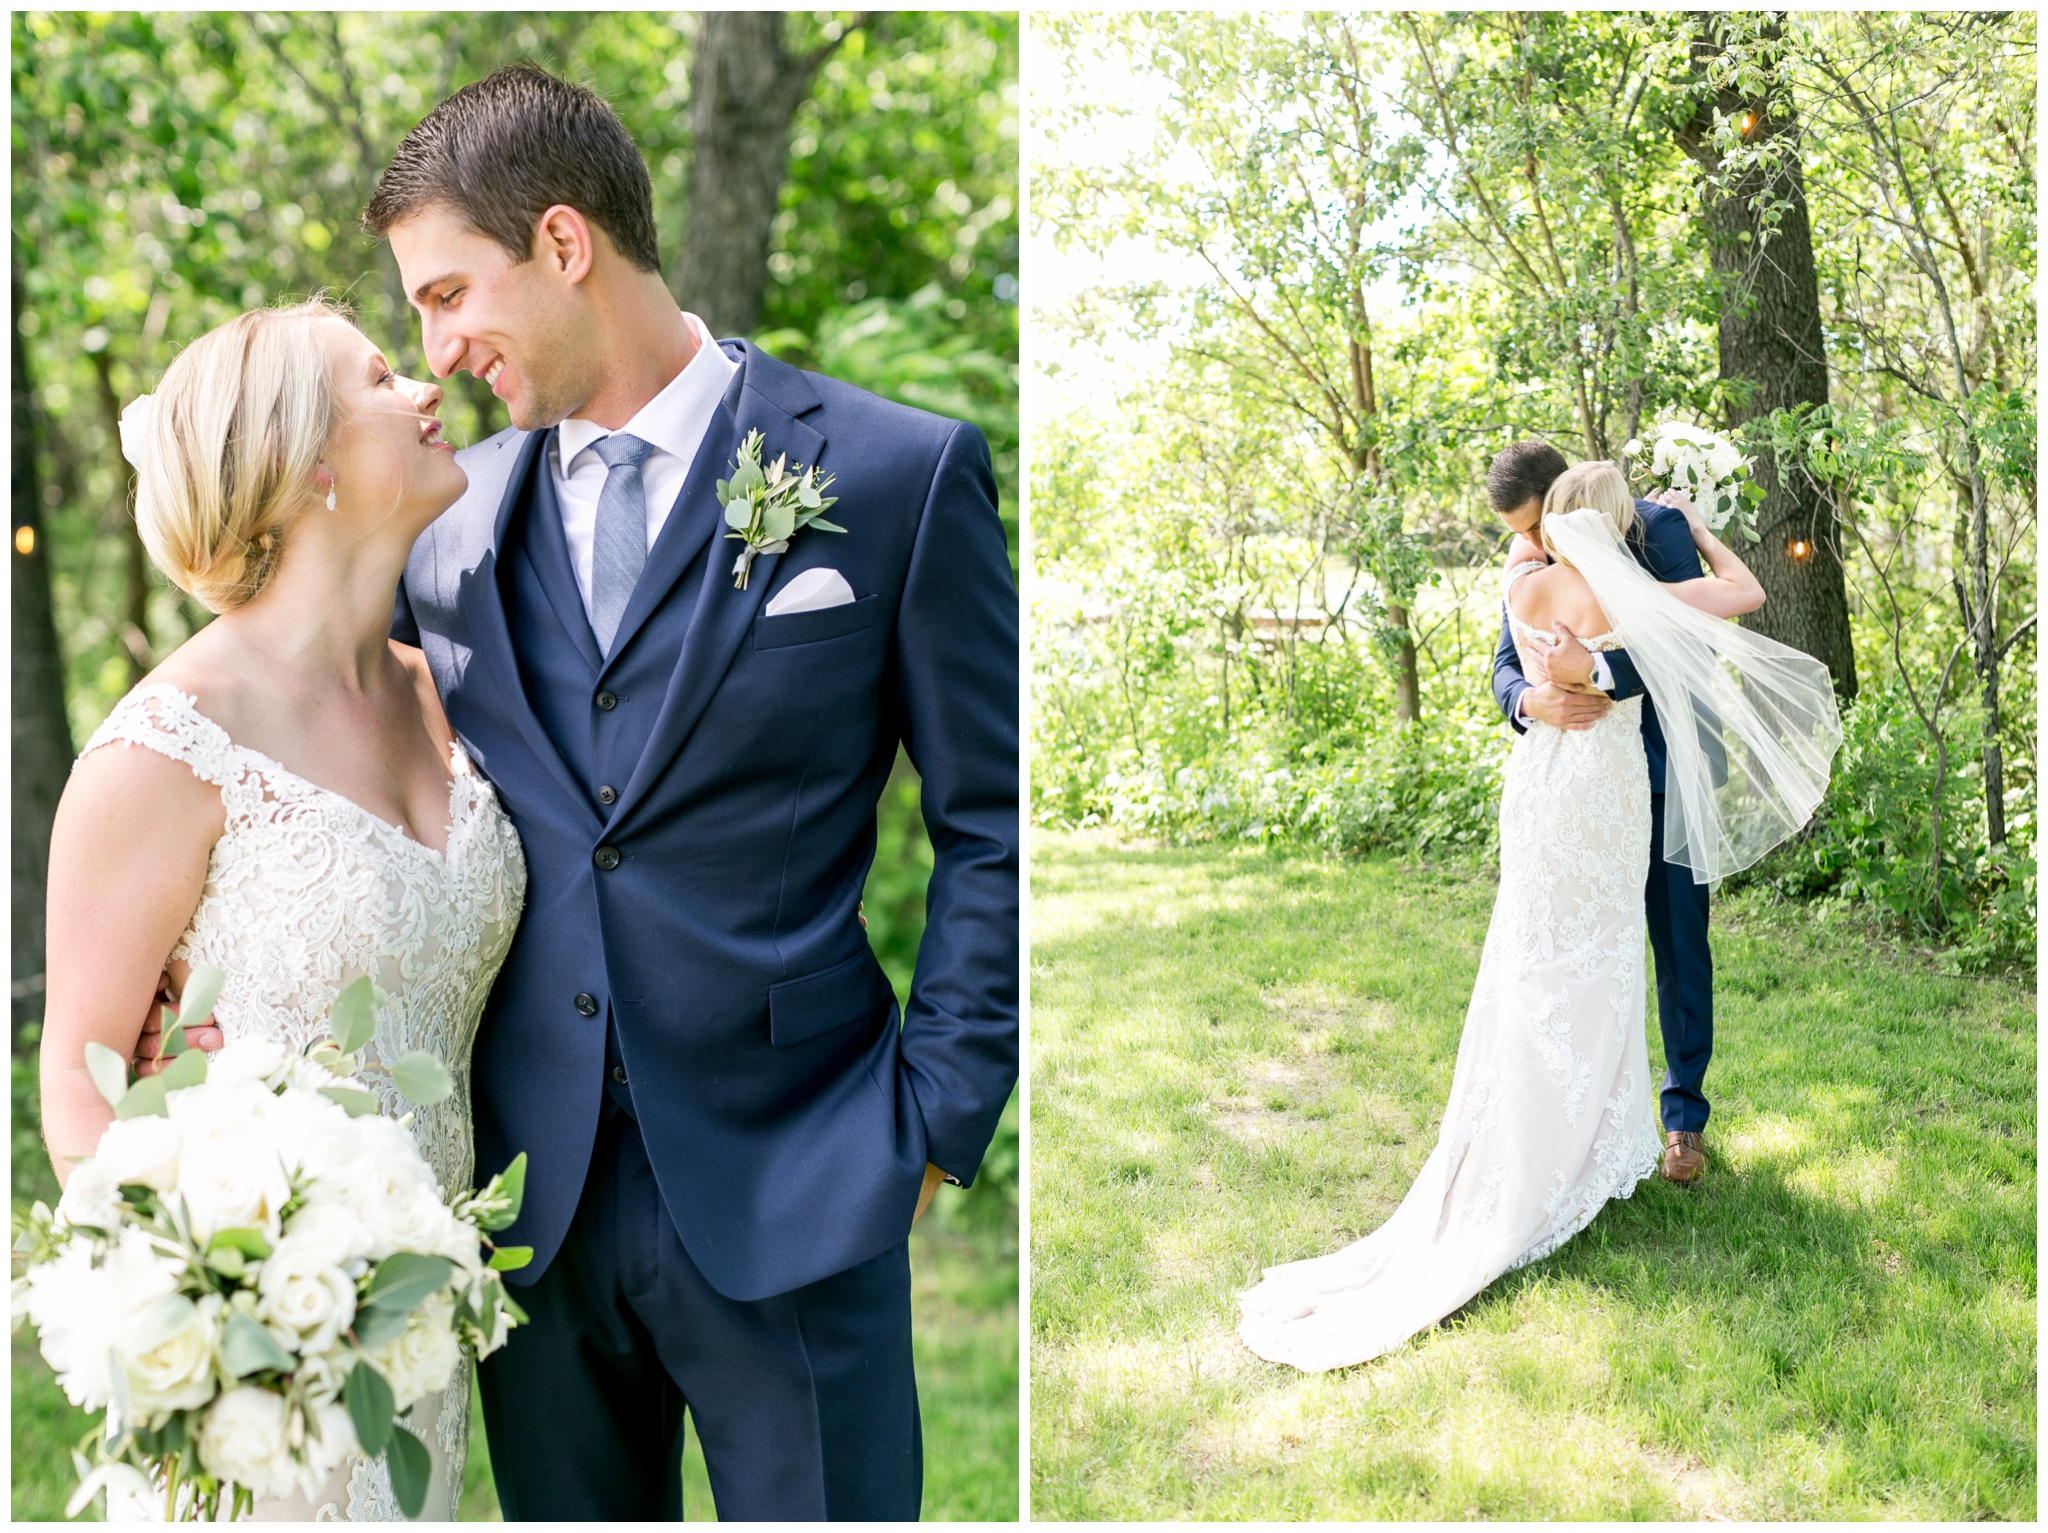 private_estate_wedding_stoughton_wisconsin_wedding_caynay_photo_3836.jpg